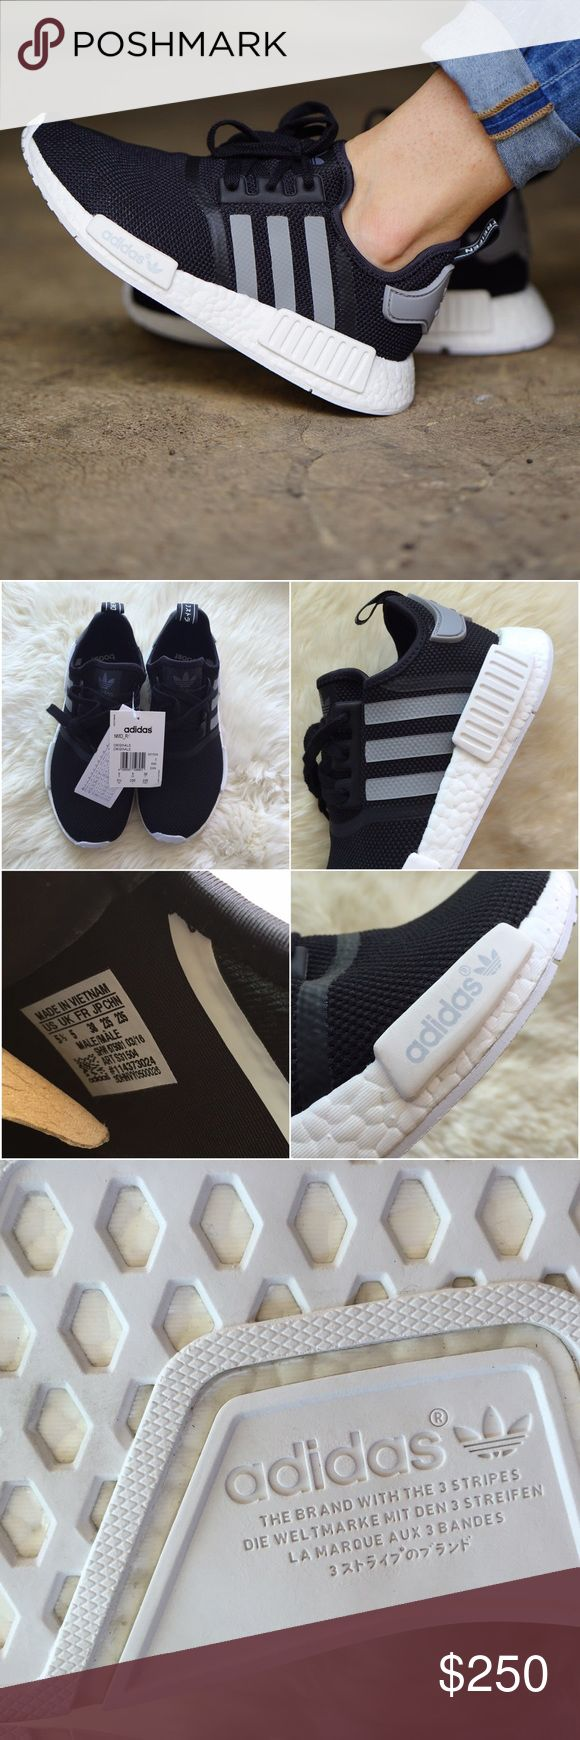 adidas Original NMD R1 Runner Core Black Cargo Trail